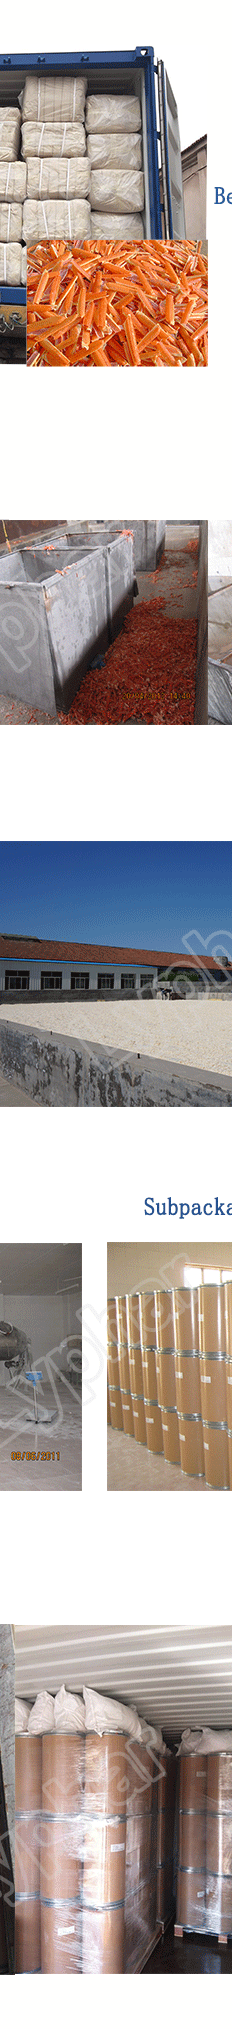 Lyphar Provide Top Quality Carboxymethyl Chitosan